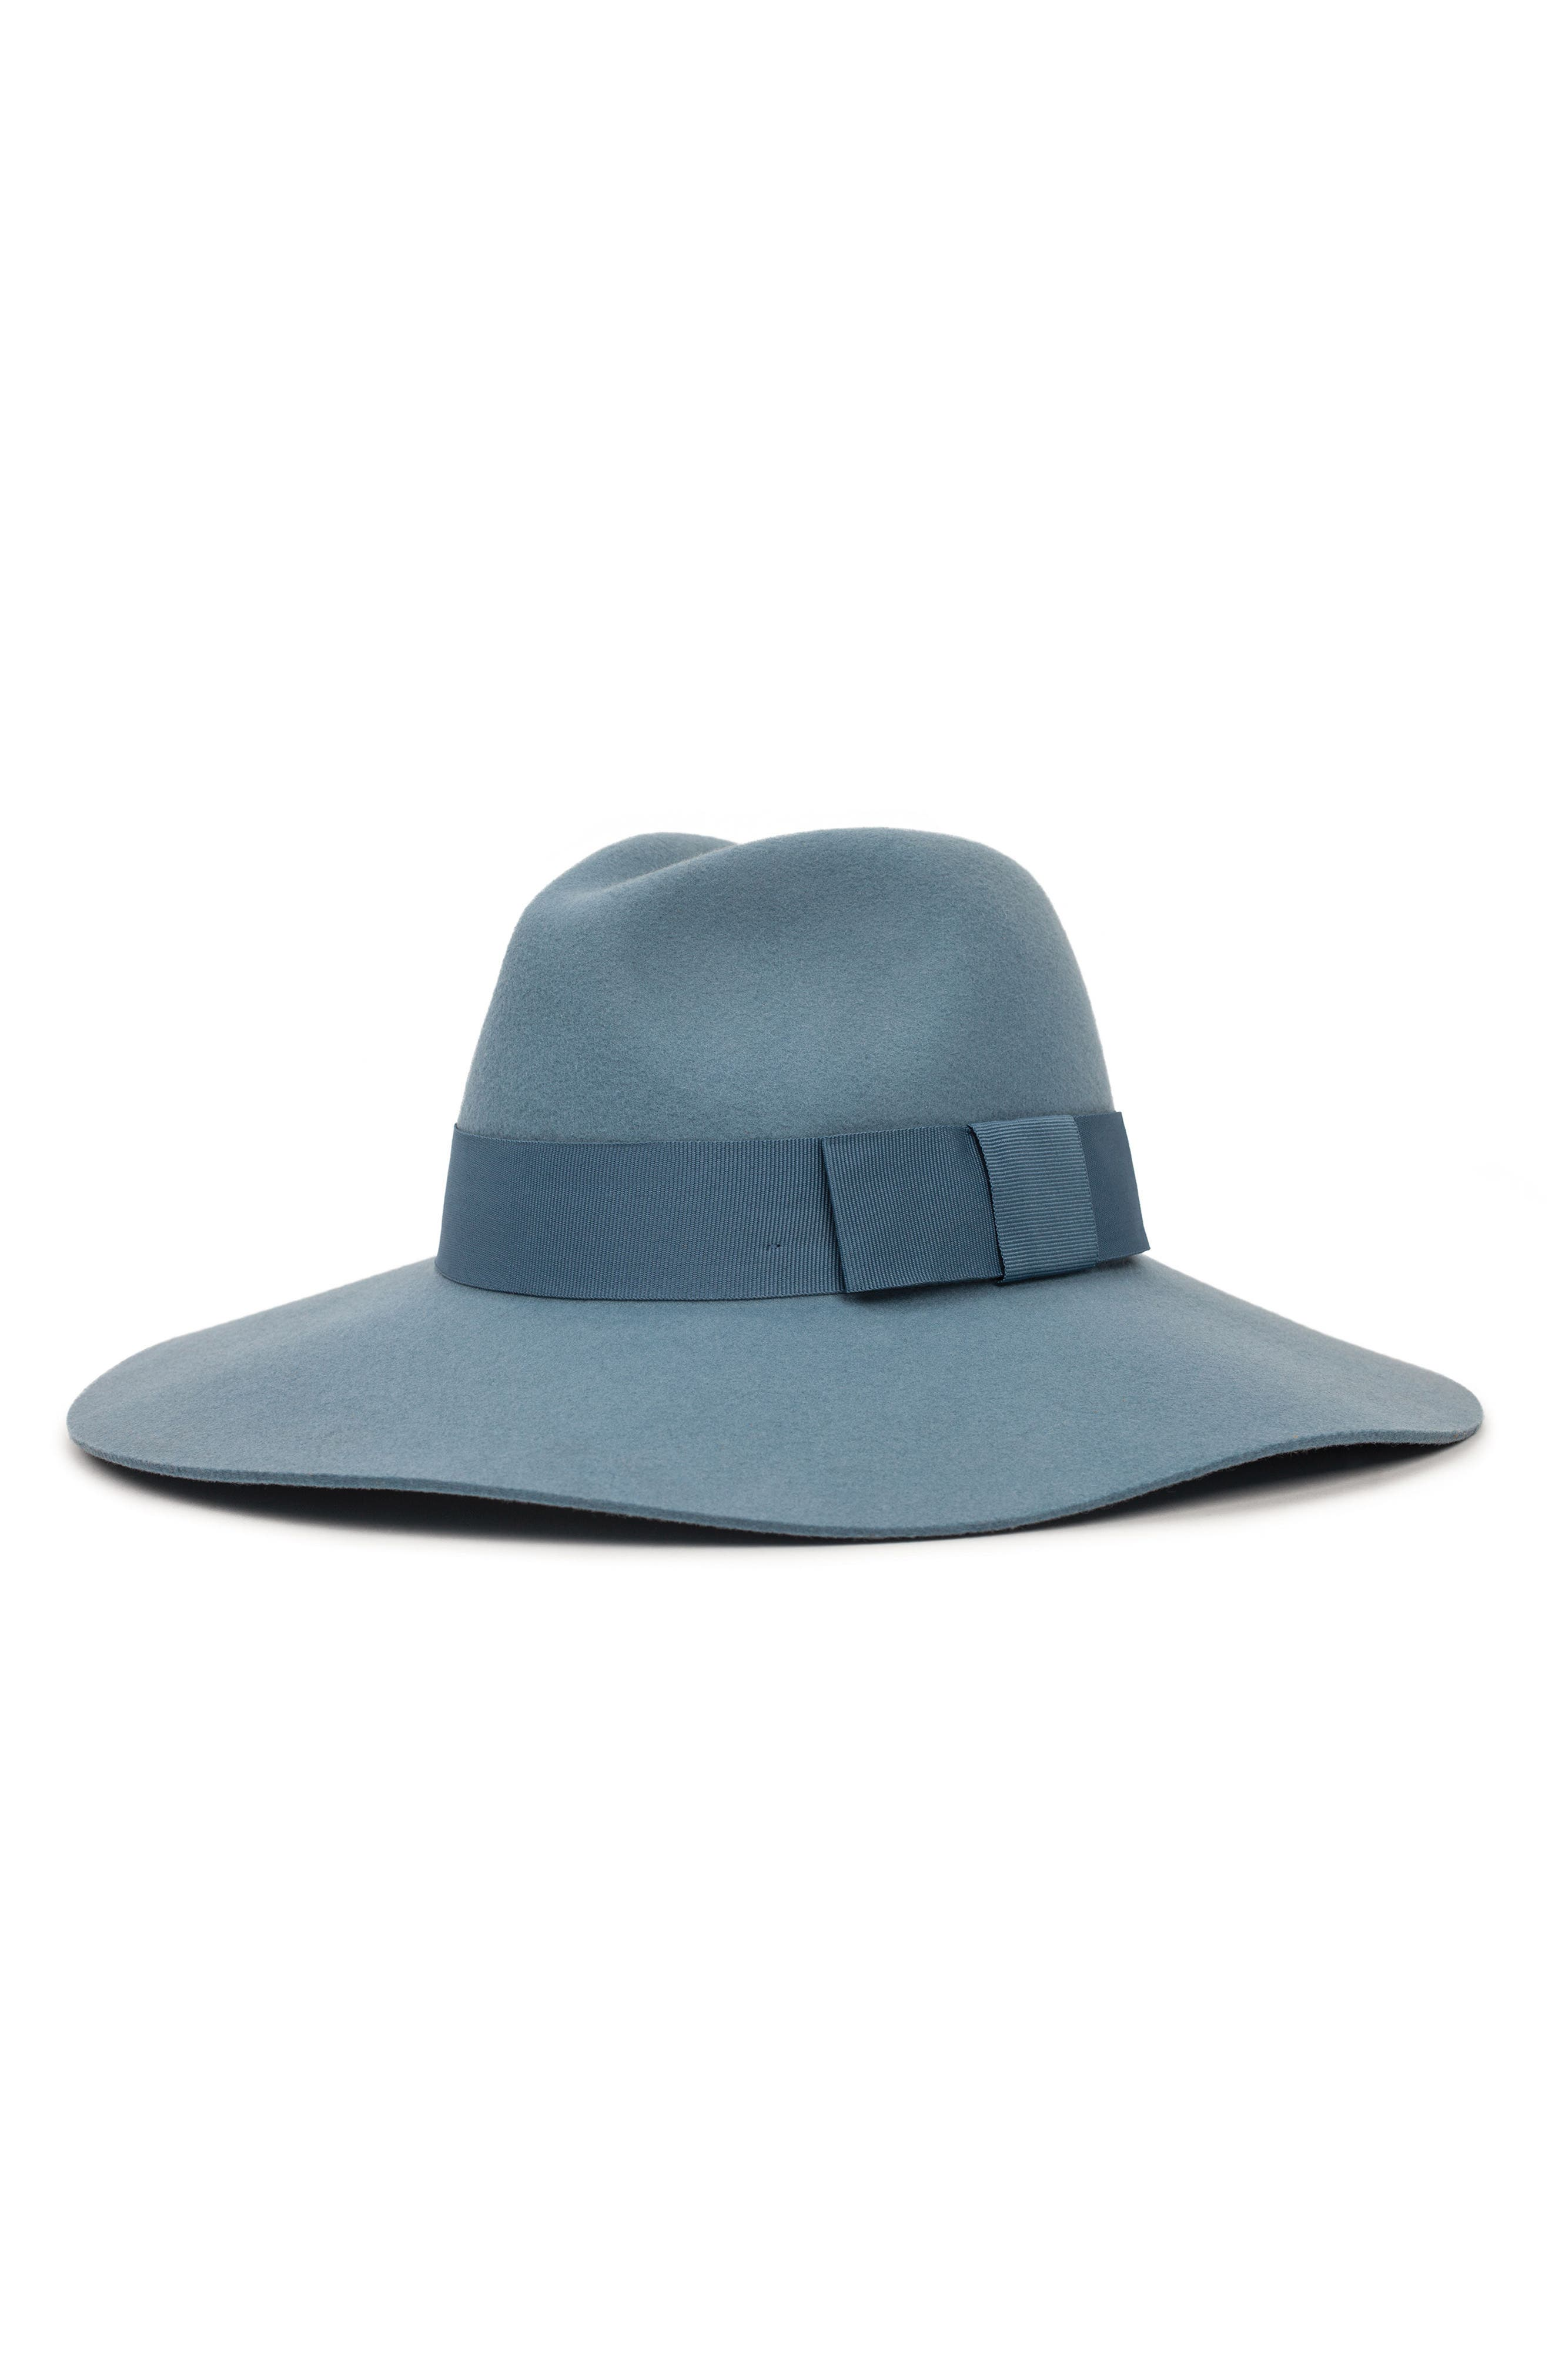 'Piper' Floppy Wool Hat,                             Main thumbnail 1, color,                             Smoke Blue